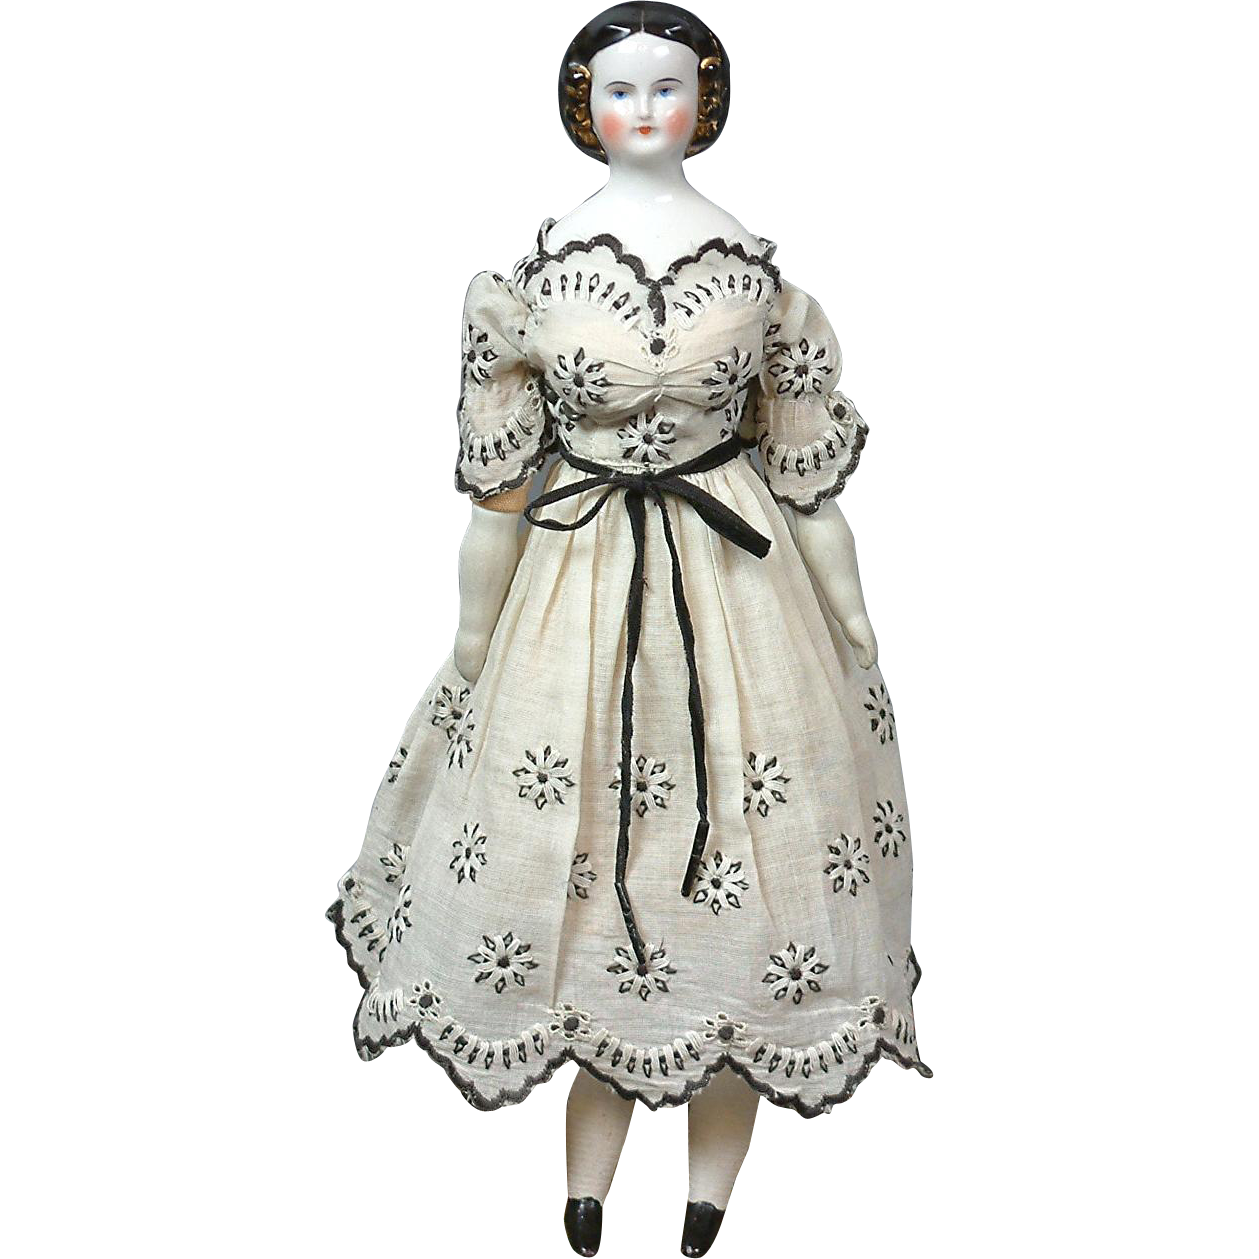 """12.5"""" China Doll with Golden Snood circa 1860 The Dainty Daisy Lady in Fabulous Enfantine Dress"""